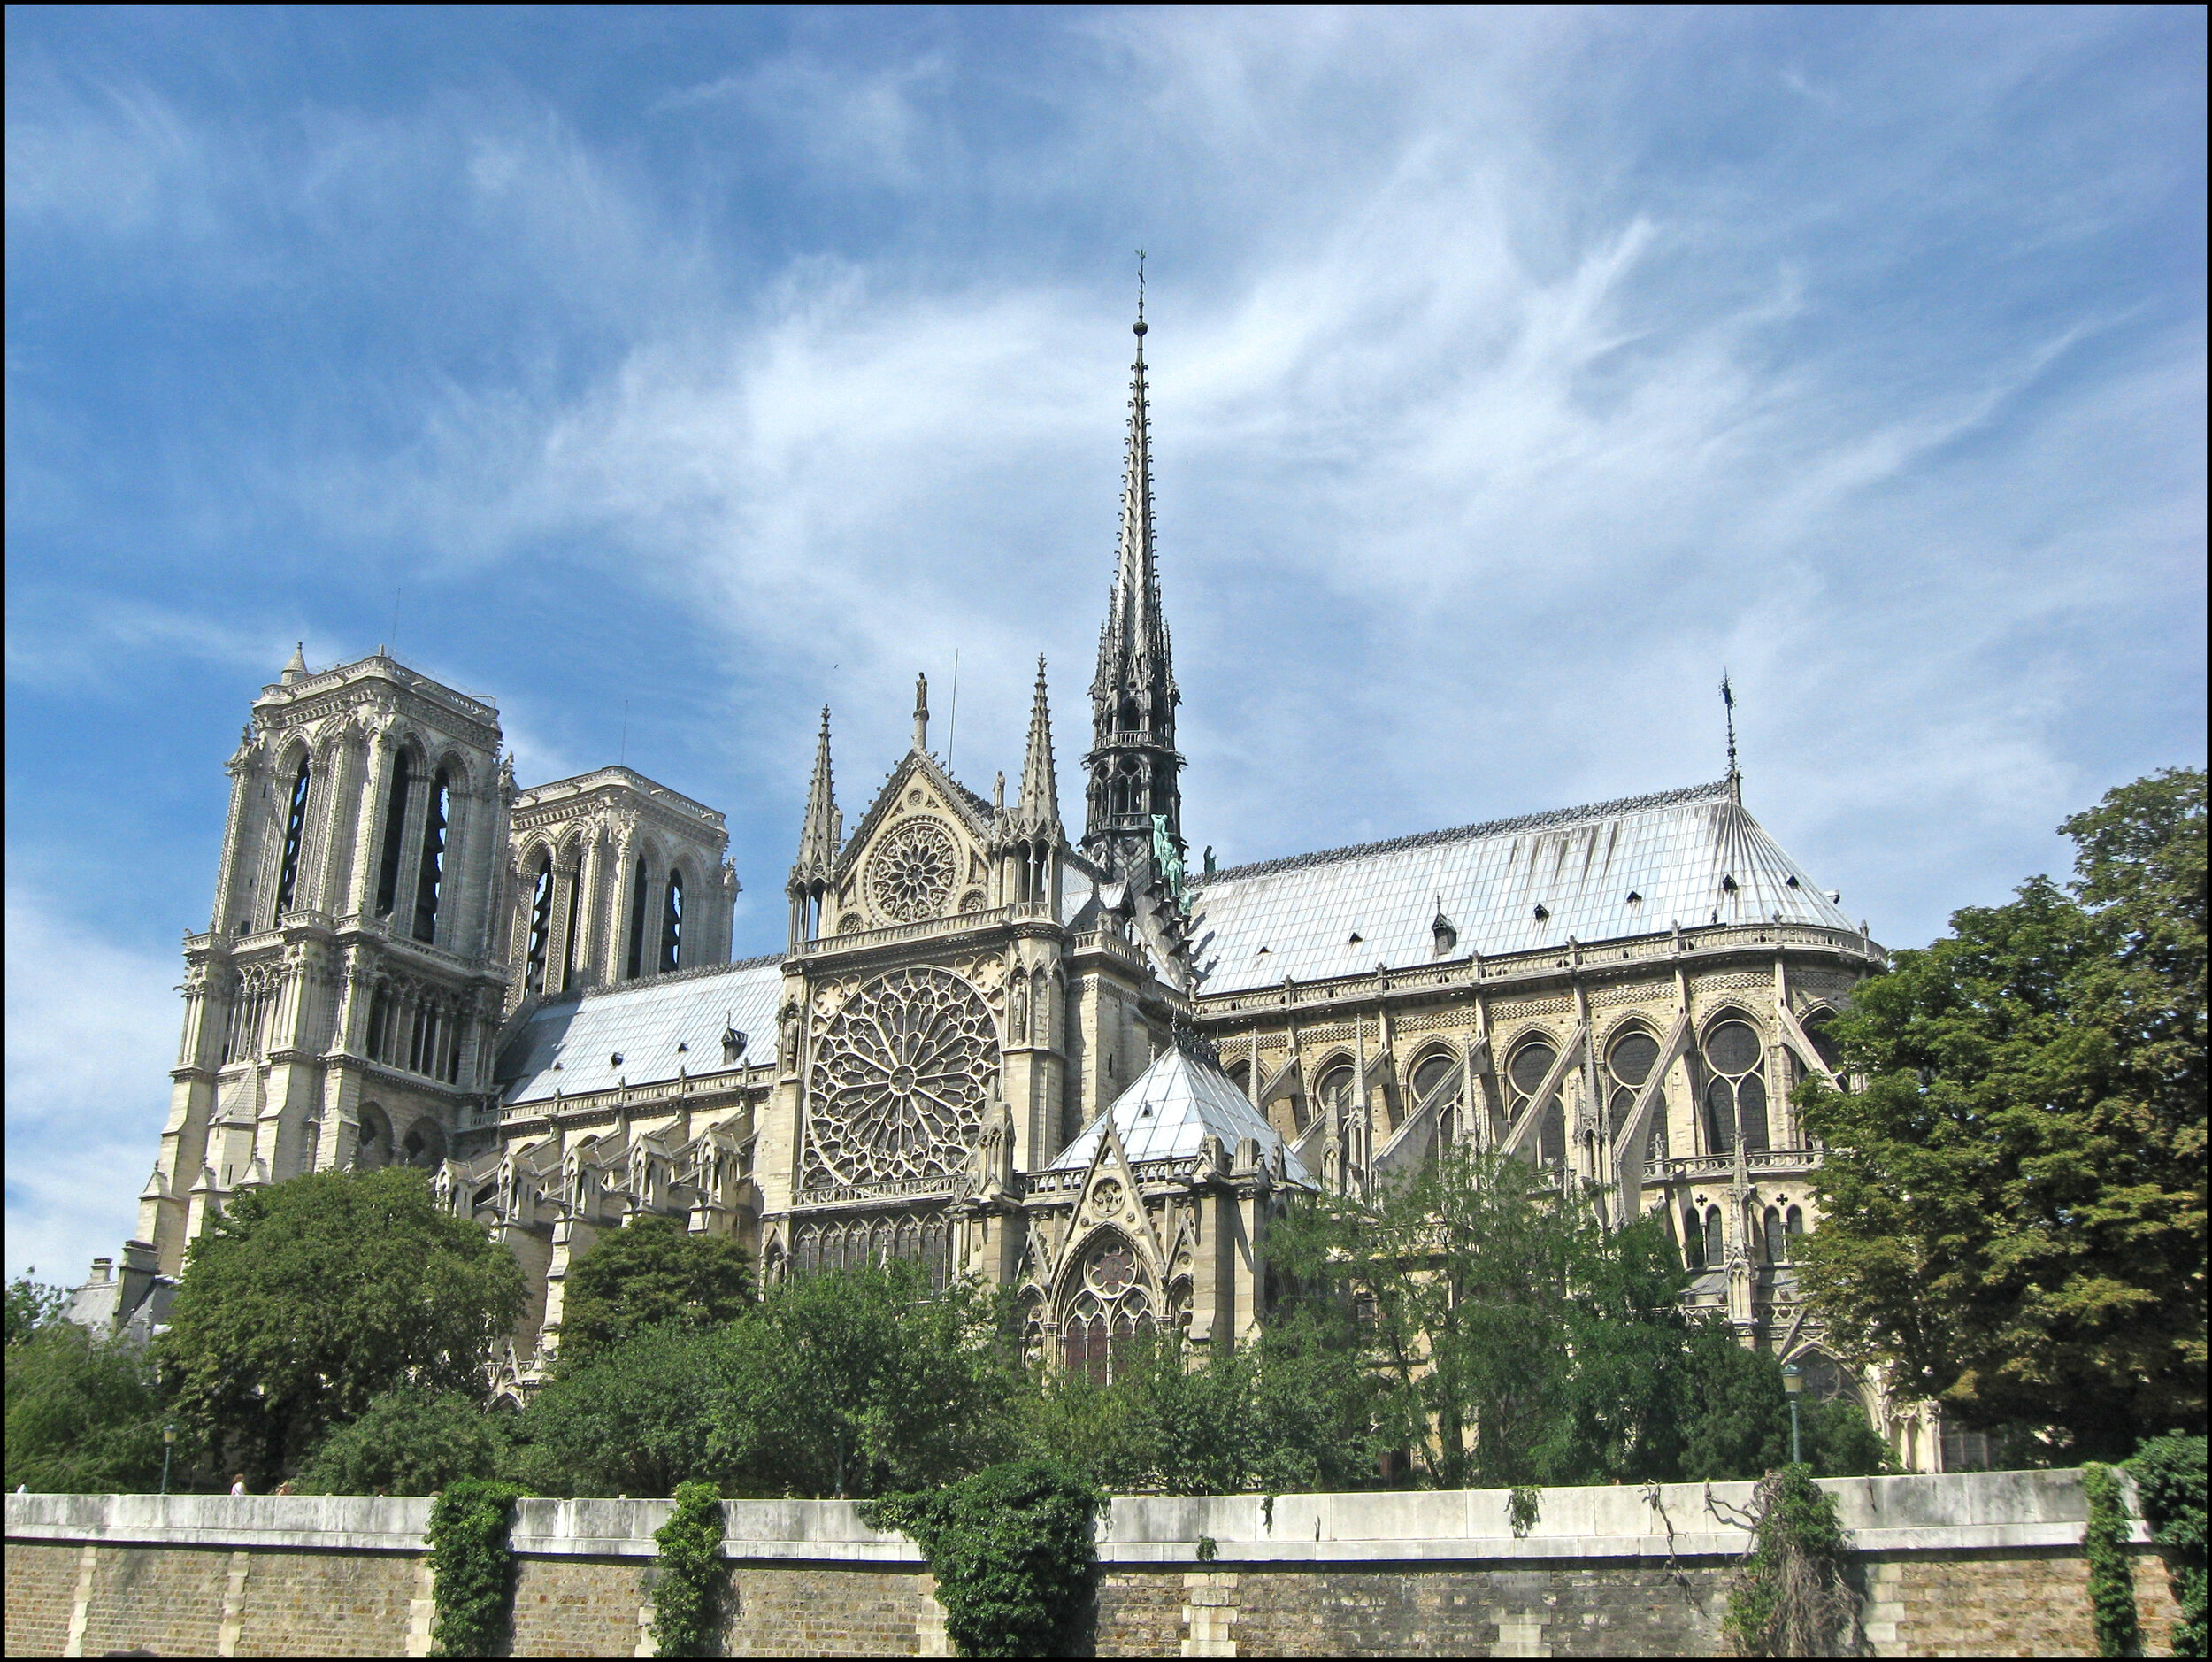 Notre Dame Cathedral in Paris before an accidental fire on April 15 destroyed its wooden roof, famed spire and much of the interior. Creative Commons photo.